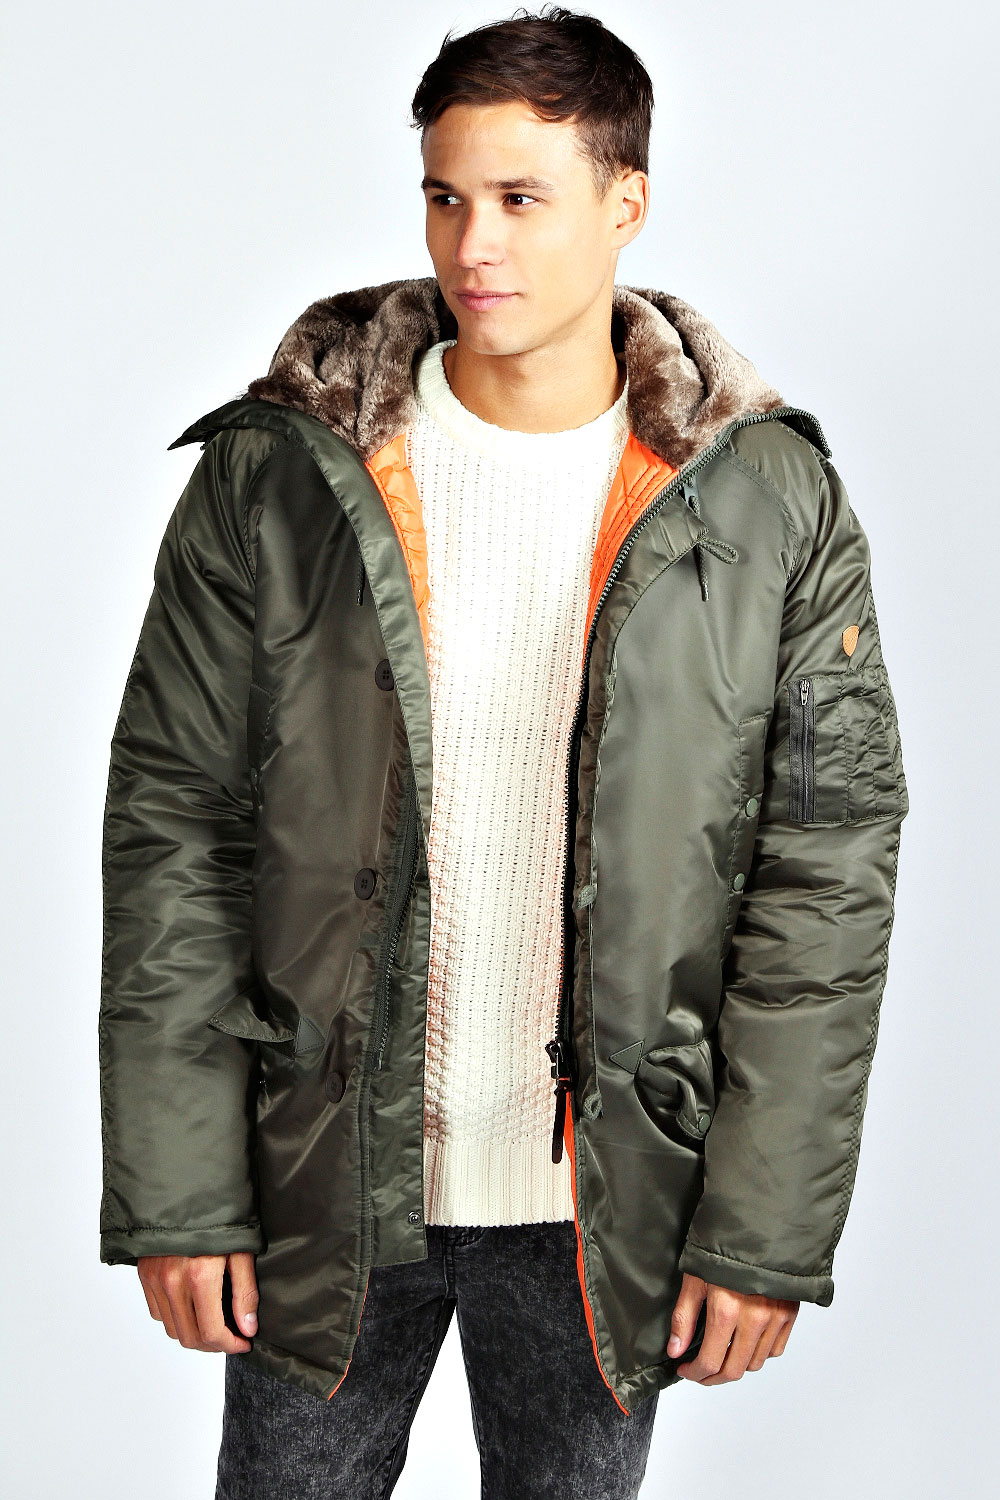 Mens Bomber Parka with Faux Fur Trimmed Hood Famous Maker isn't a brand, think of it as a deal so fabulous we can't even reveal the actual label. It's just one of the many ways we work hard to bring you top designers and brands at amazing values.